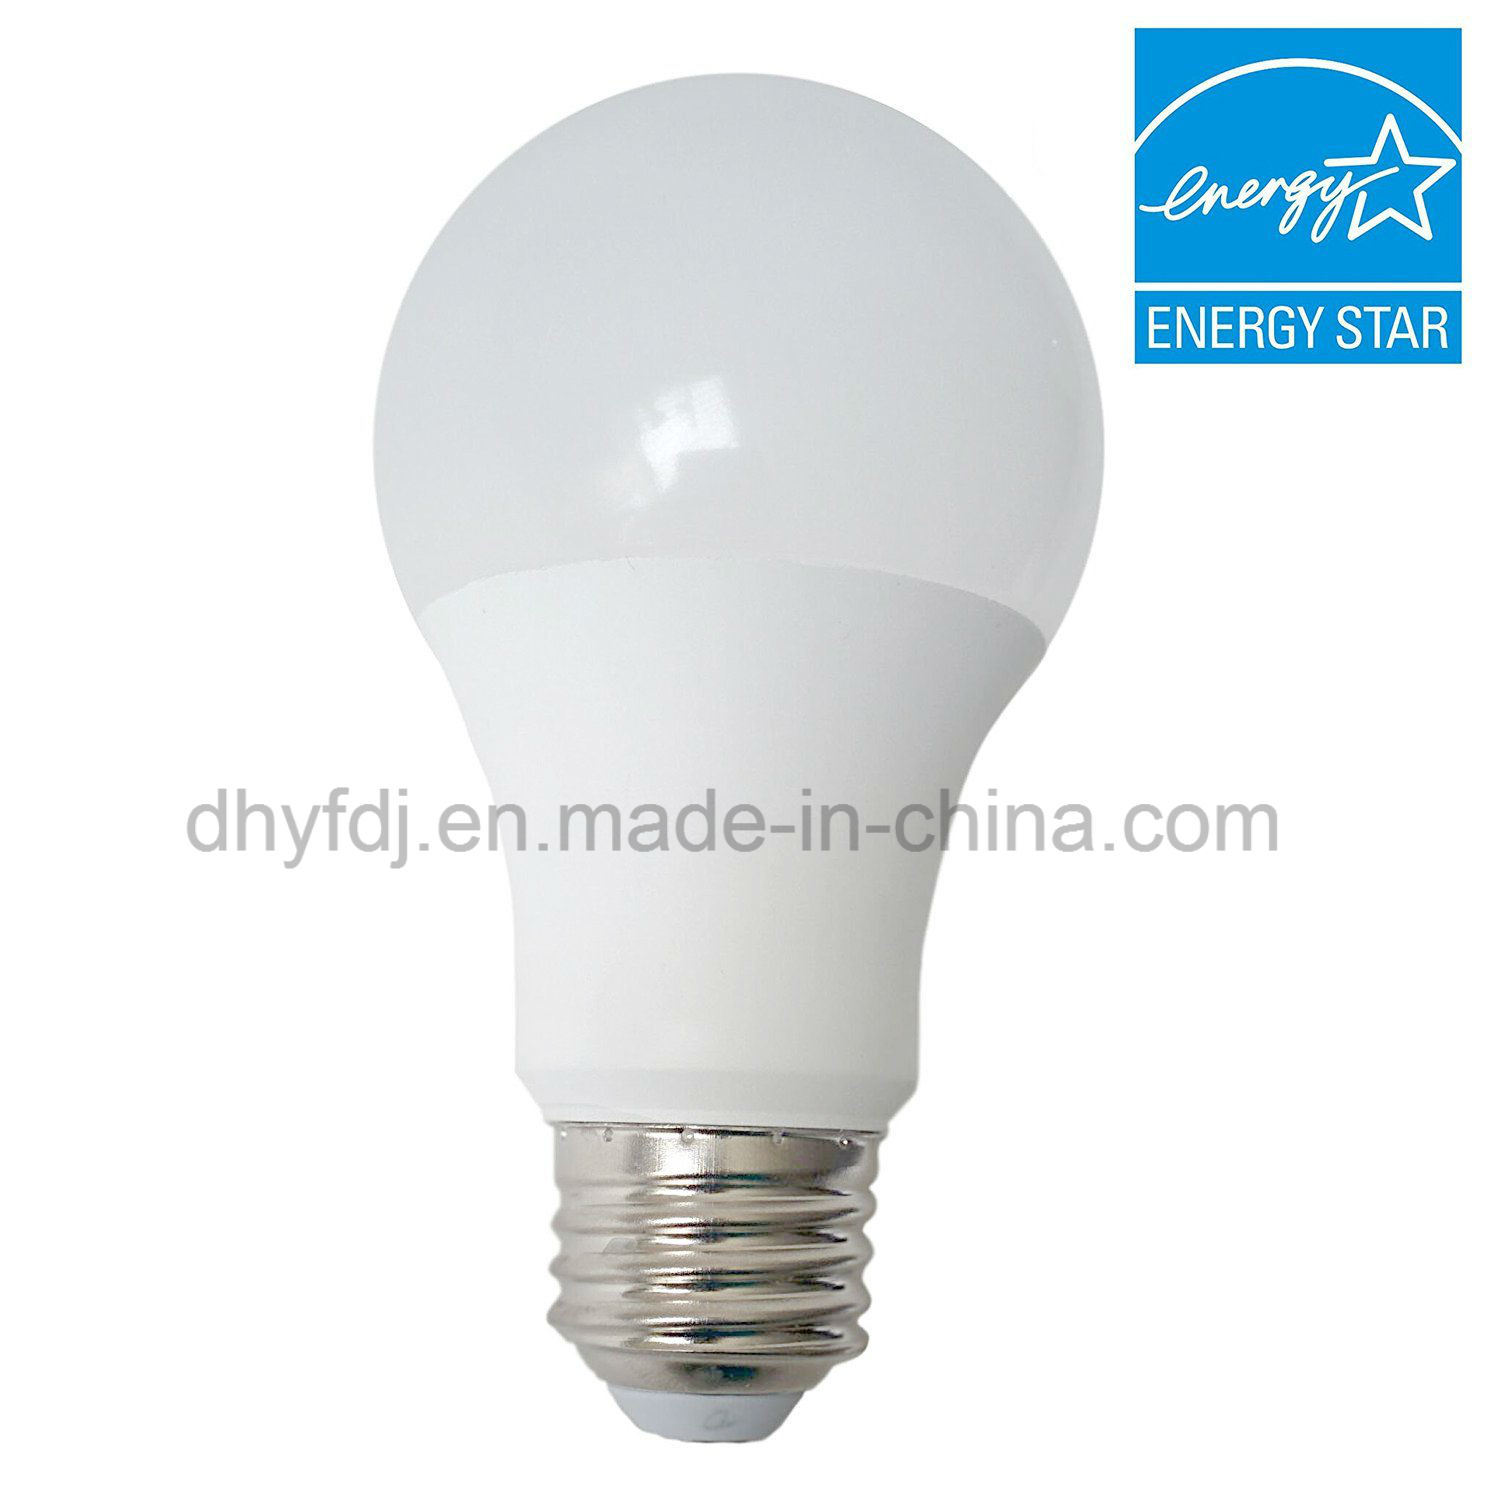 LED A19 6W Omni-Directional Light Bulb, Dimmable, 40W Equivalent, 3000k Warm White, 470 Lumens, 25, 000 Life Hours